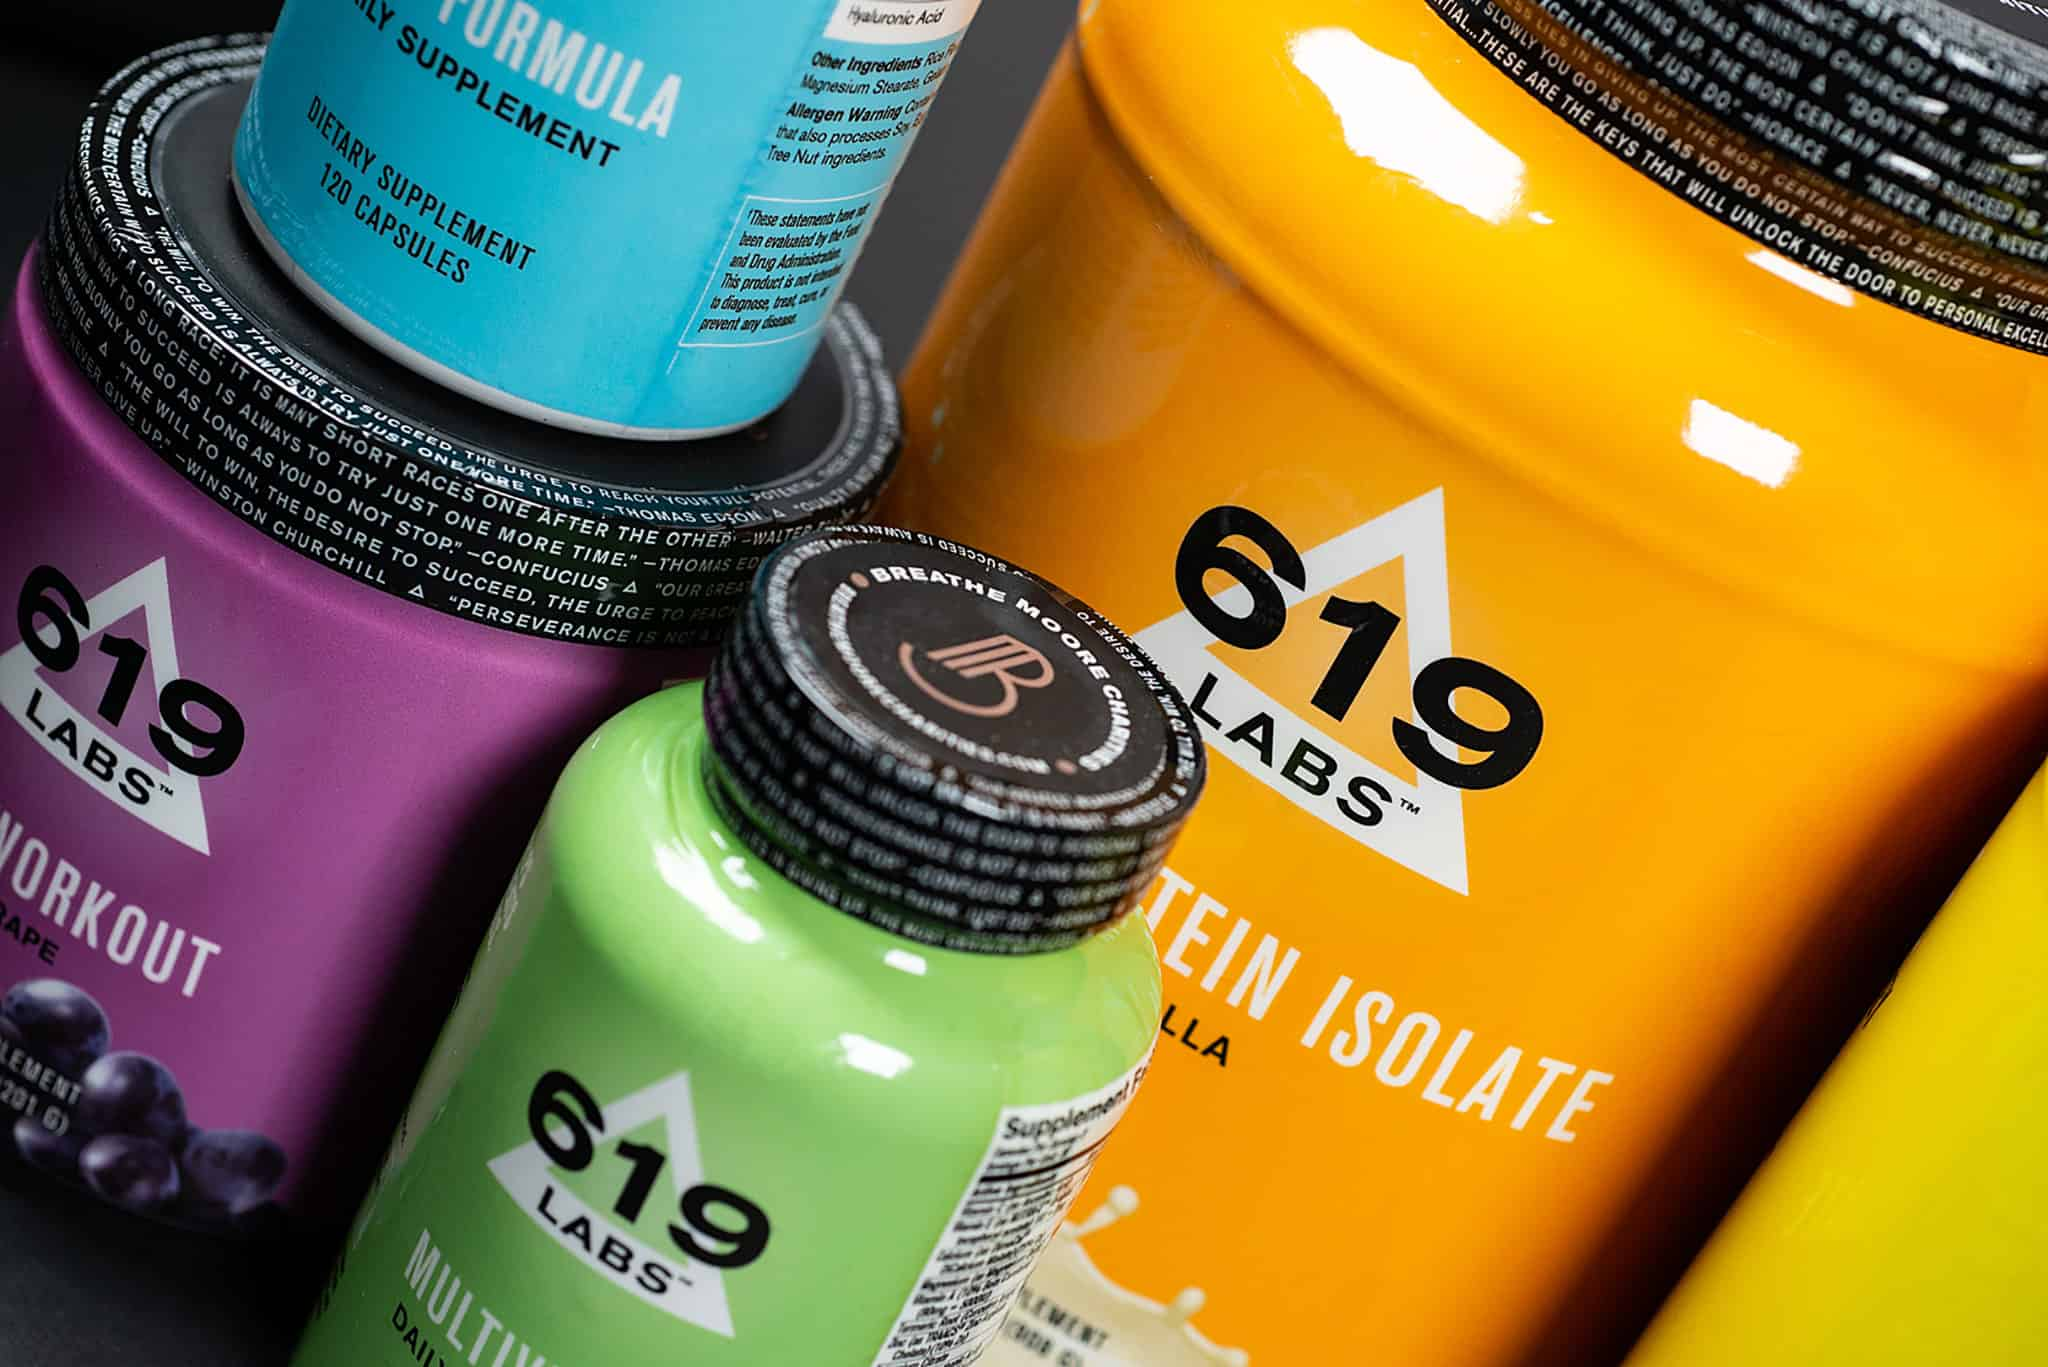 Custom packaging, graphic design, and branding for 619 Labs fitness and  nutritional supplements,